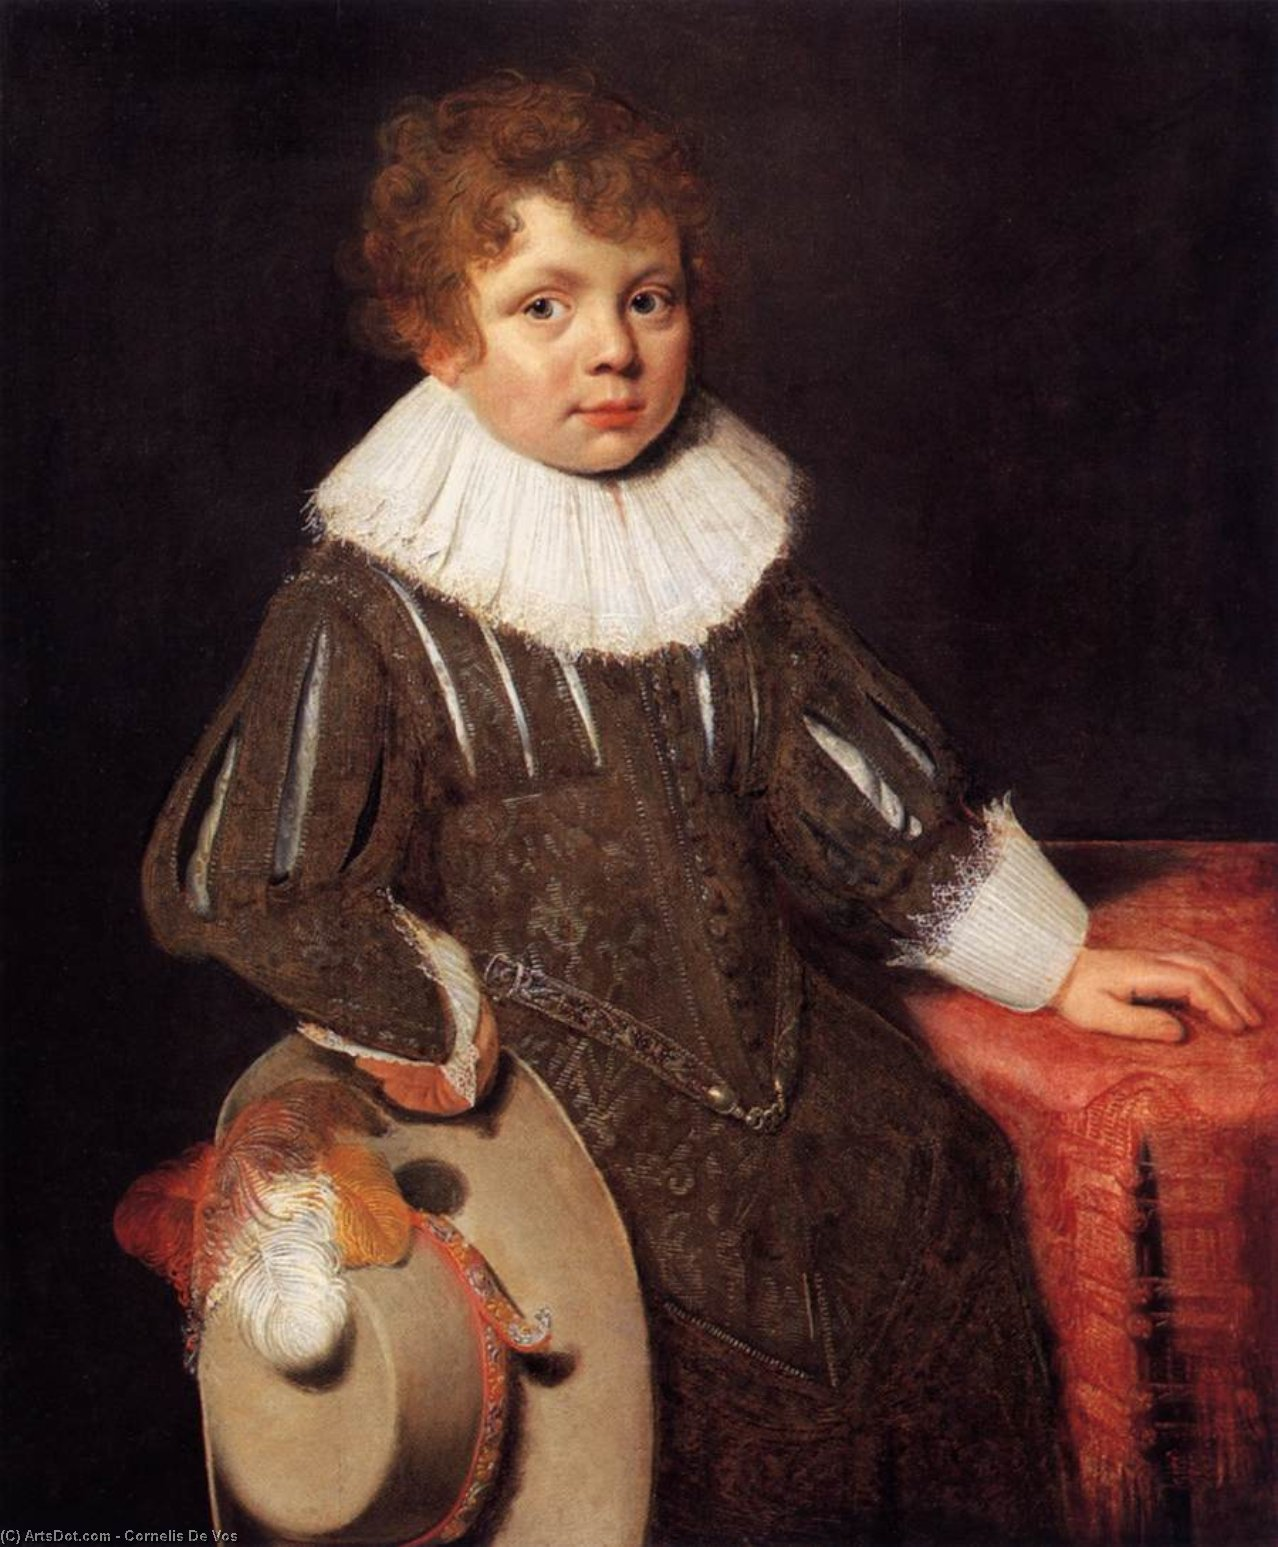 Portrait of a Boy, Oil by Cornelis De Vos (1585-1651, Belgium)